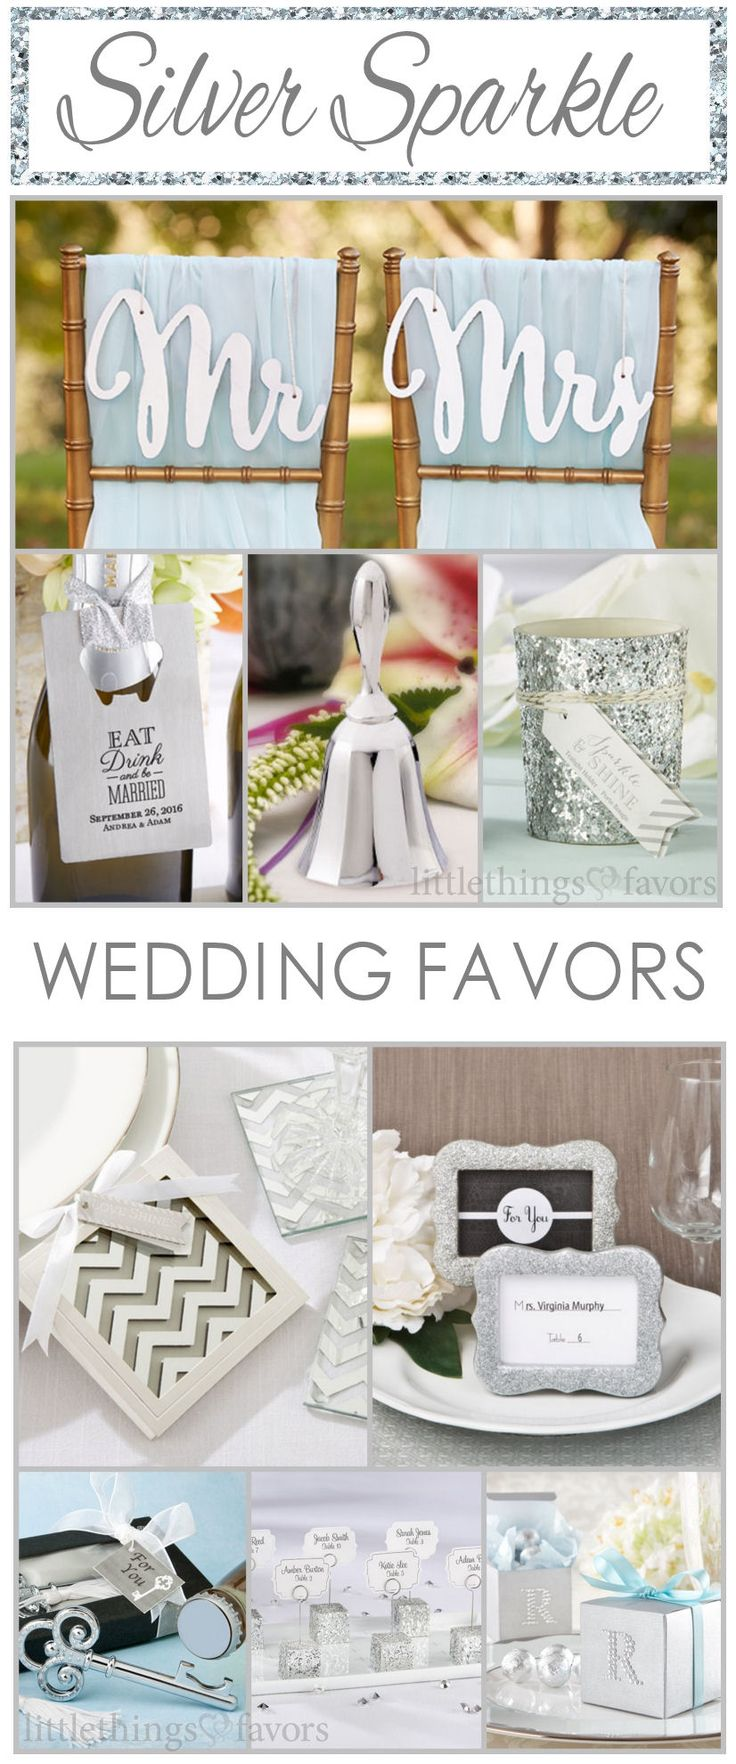 Little Things Favors Wedding Favors Unique - induced.info